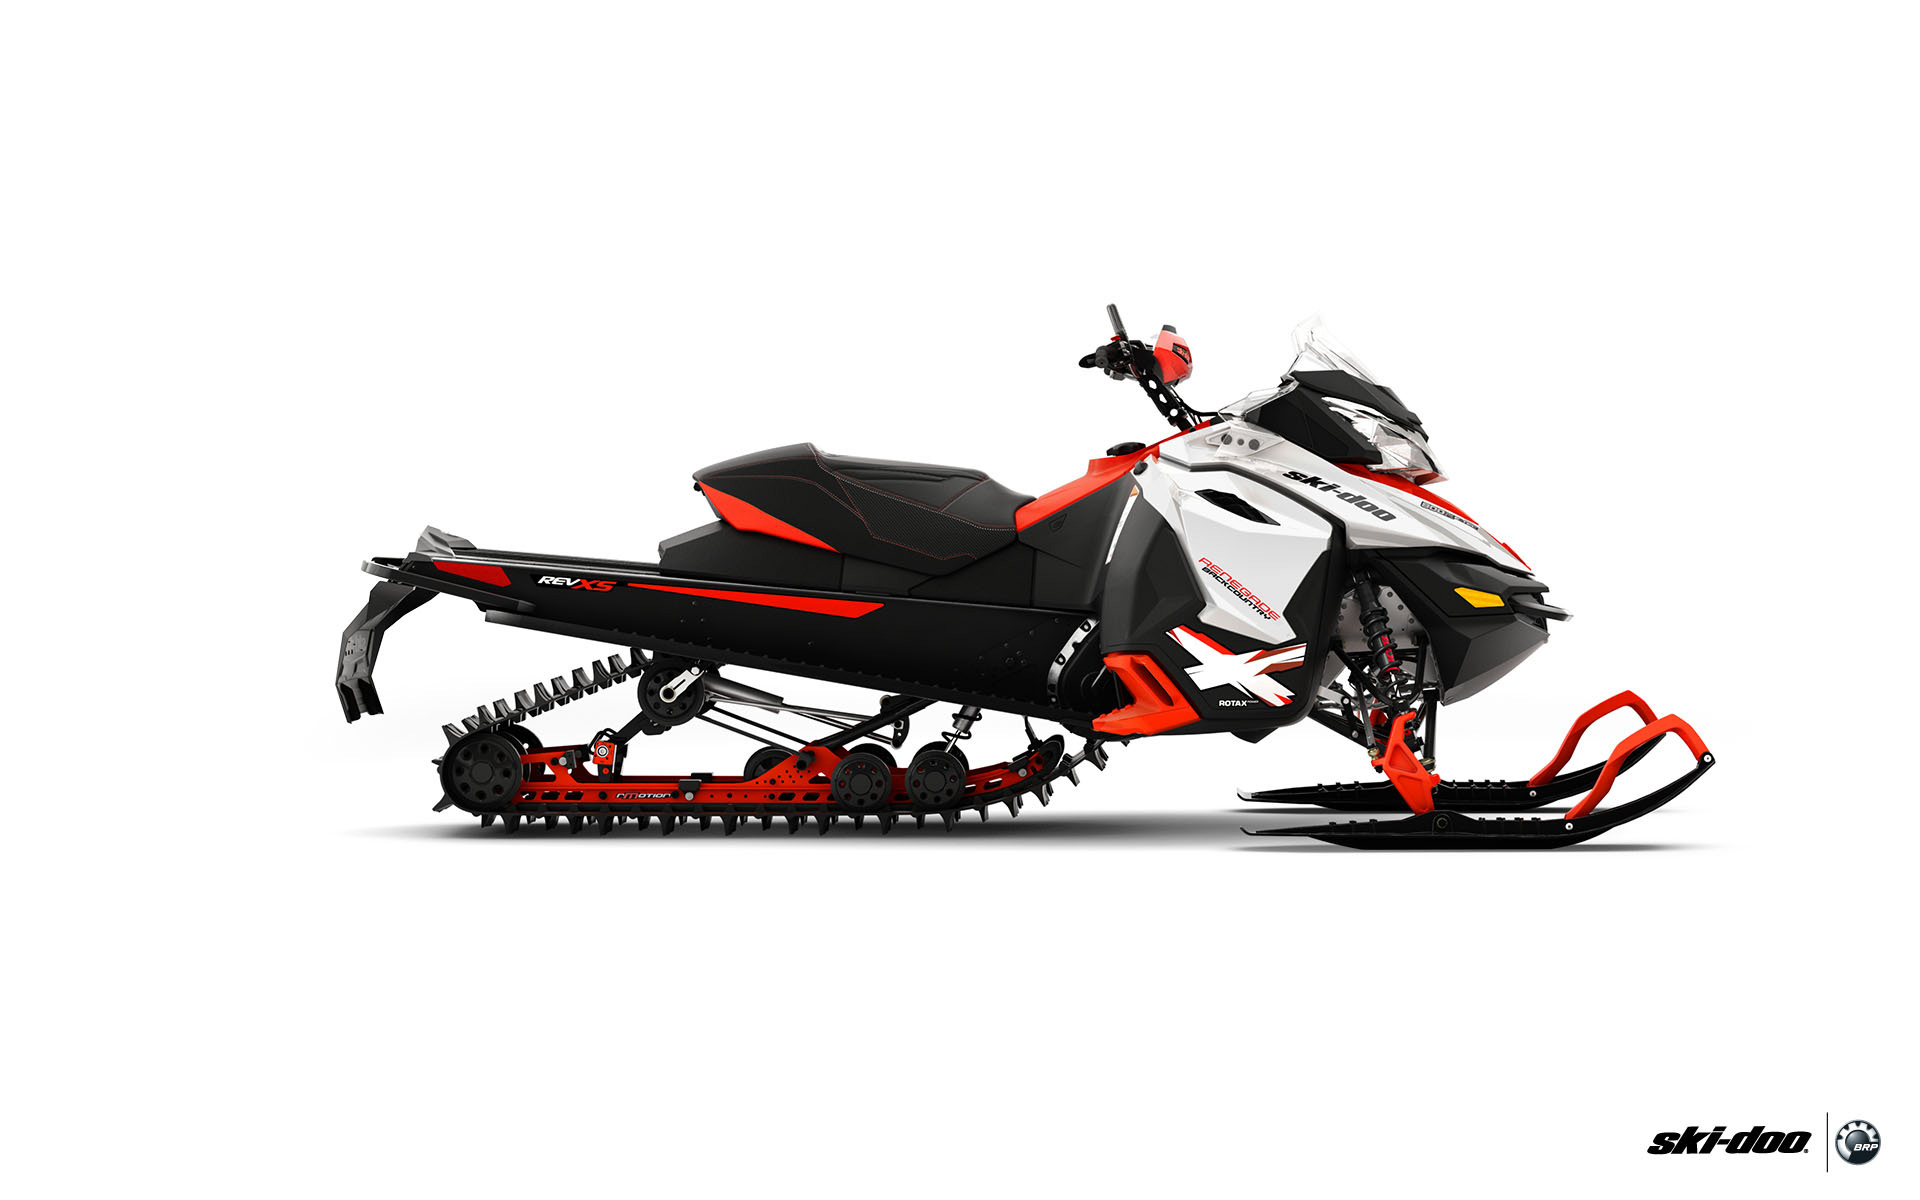 RENEGADE BACKCOUNTRY X 800R E-TEC